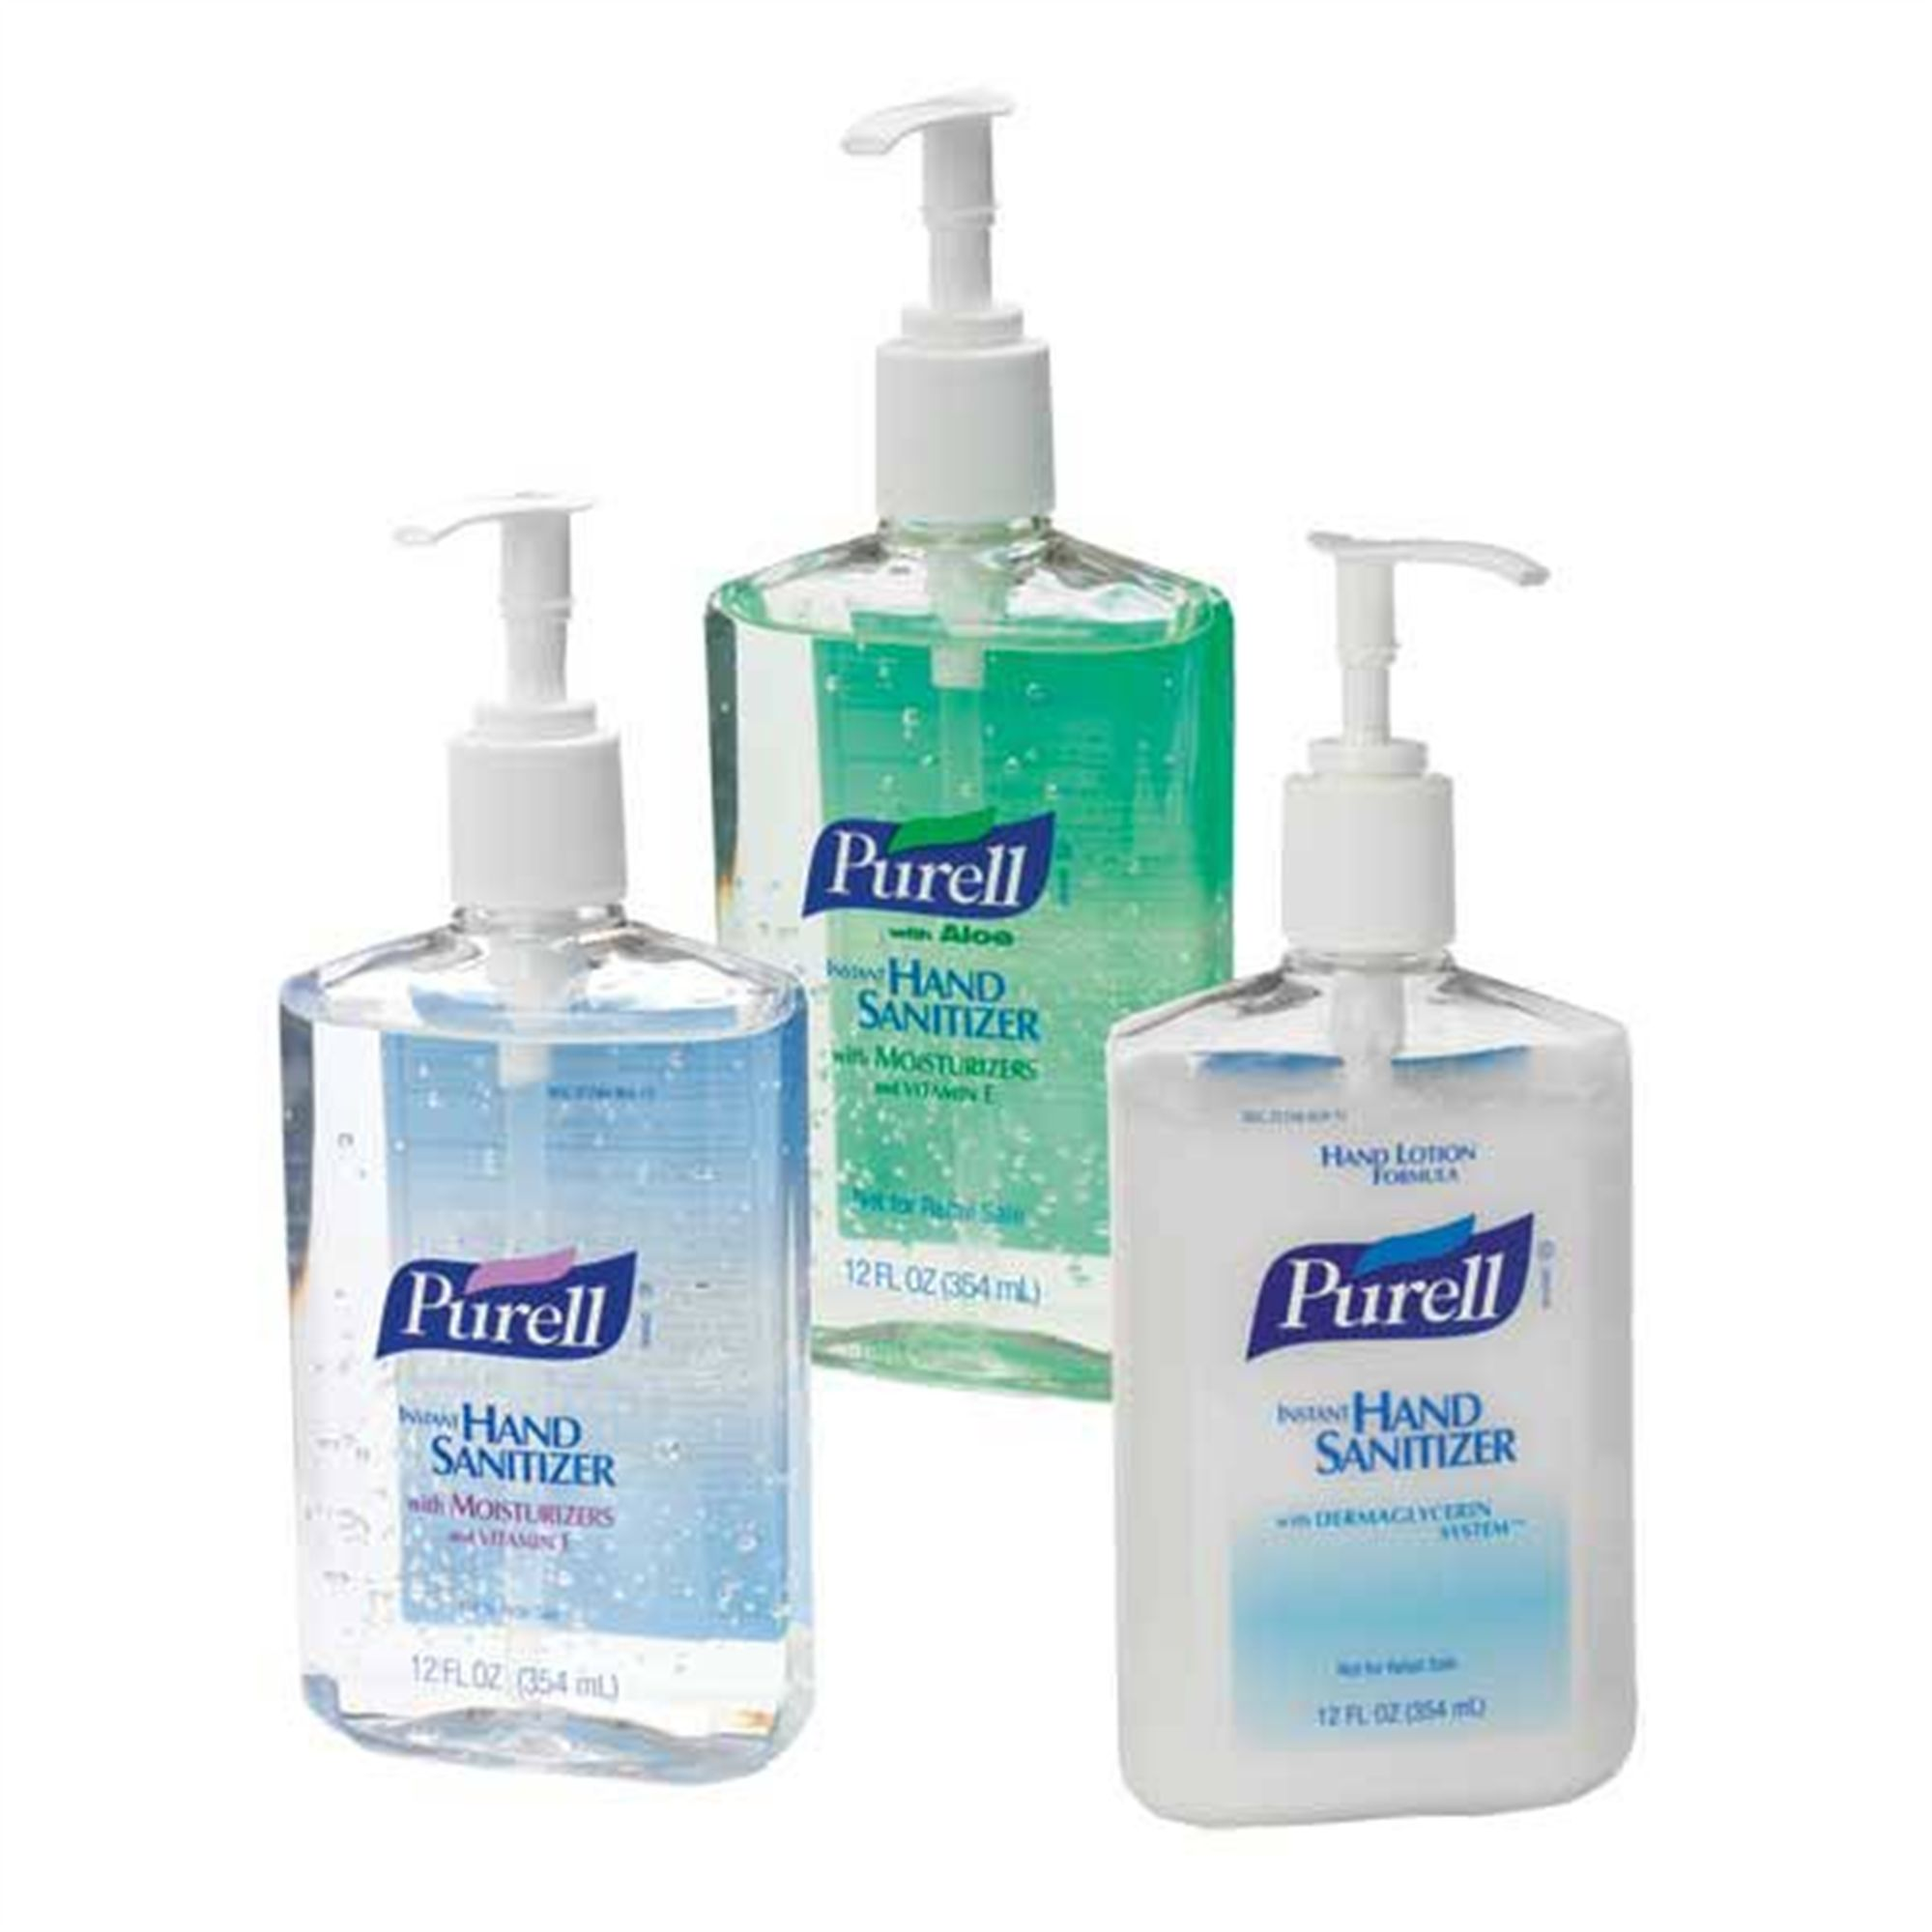 Get Purell Hand Sanitizer for just $0.19 at Target right now!